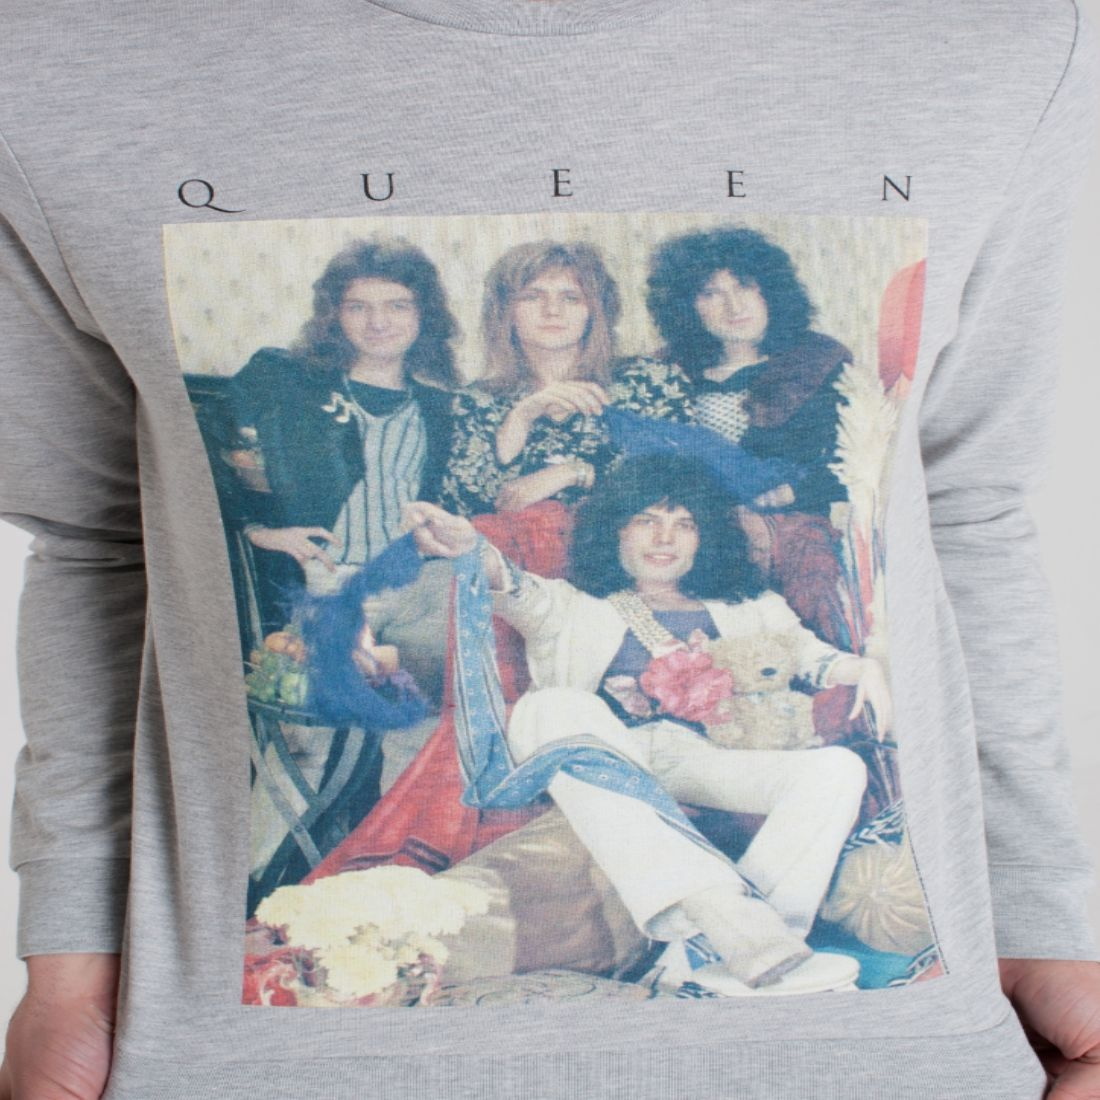 Queen 1973 sweatshirt